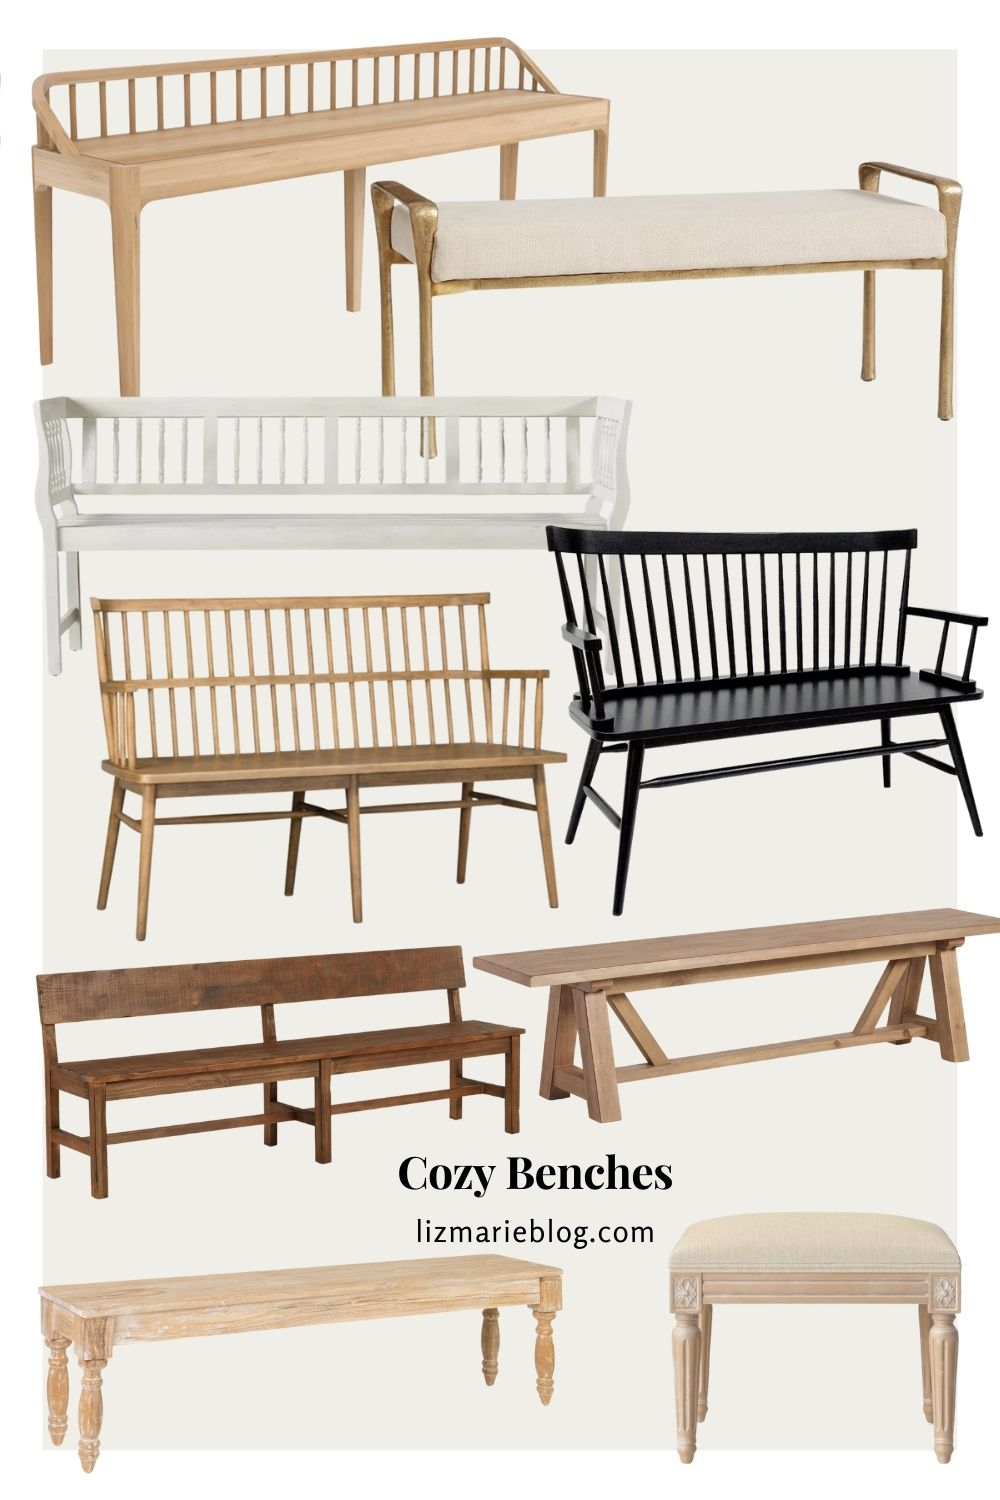 Cozy Benches for Entryways, Bedrooms, and Every Room in between!